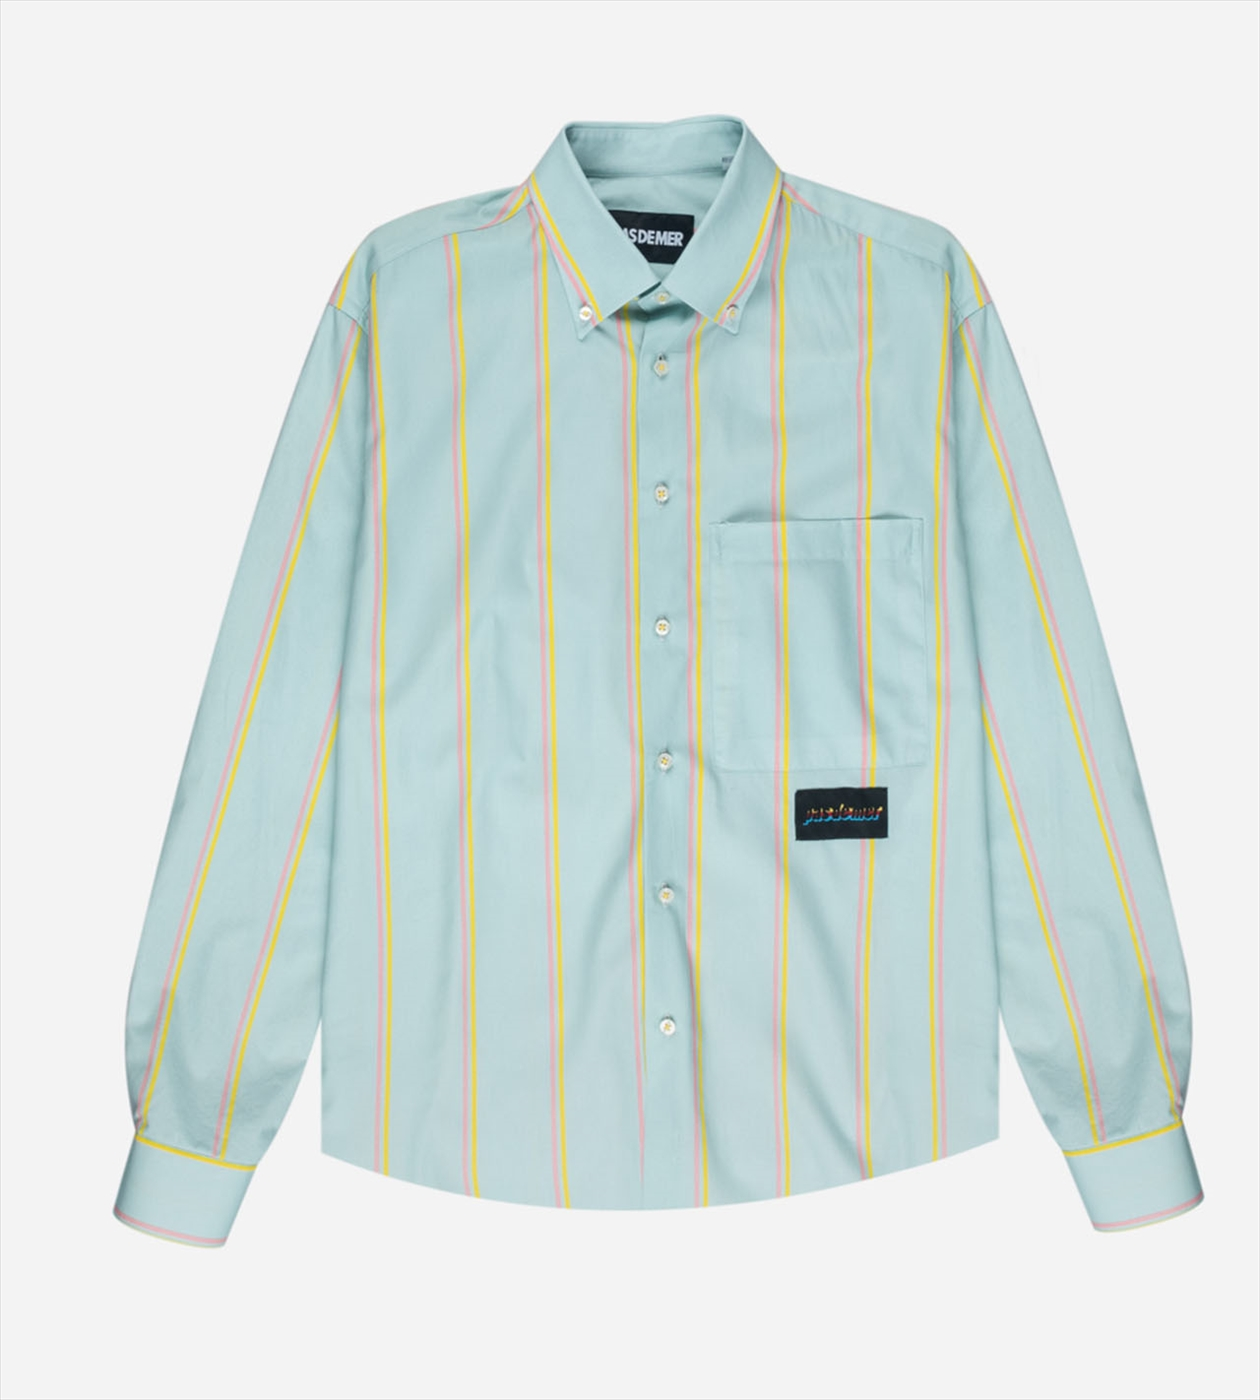 【PAS DE MER/パドゥメ】HOLIDAY SHIRT 長袖シャツ / LIGHT BLUE (PINK/YELLOW STRIPES)